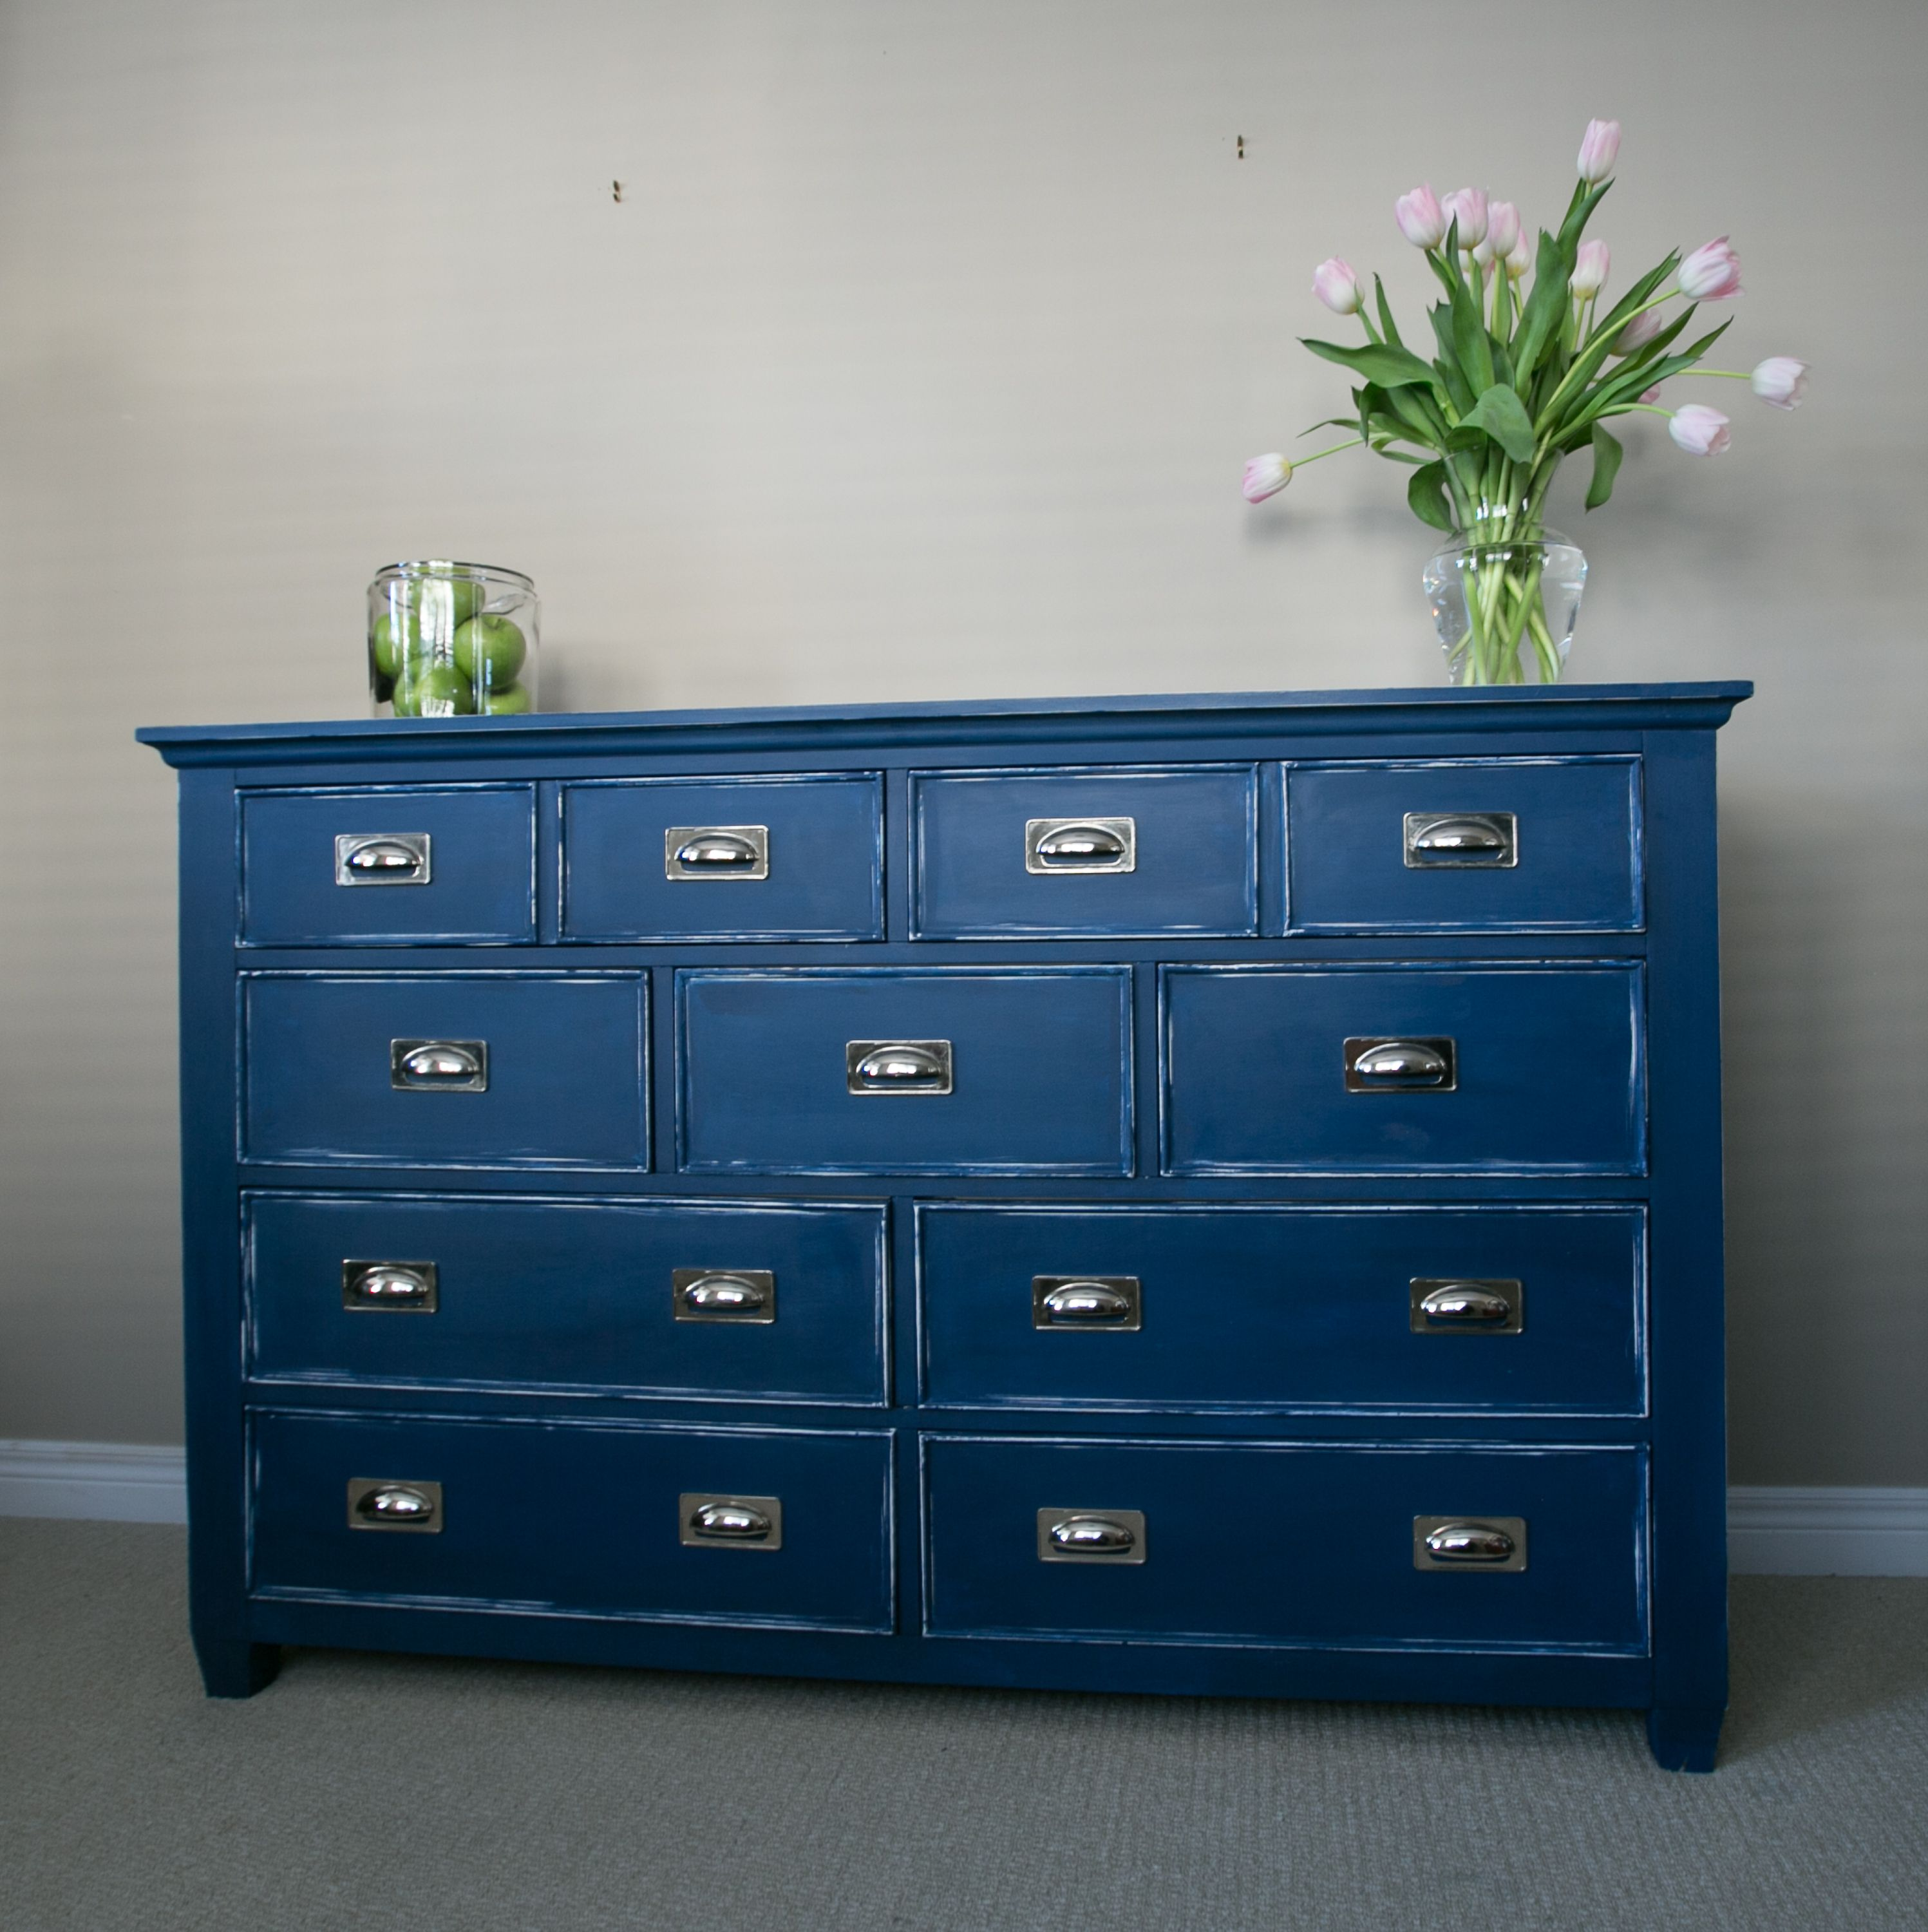 Chalk Paint Dresser Navy Blue Color Napoleonic Blue Annie Sloan Kids Room Nautical Dresser Pintura A La Tiza Muebles Muebles Reciclados